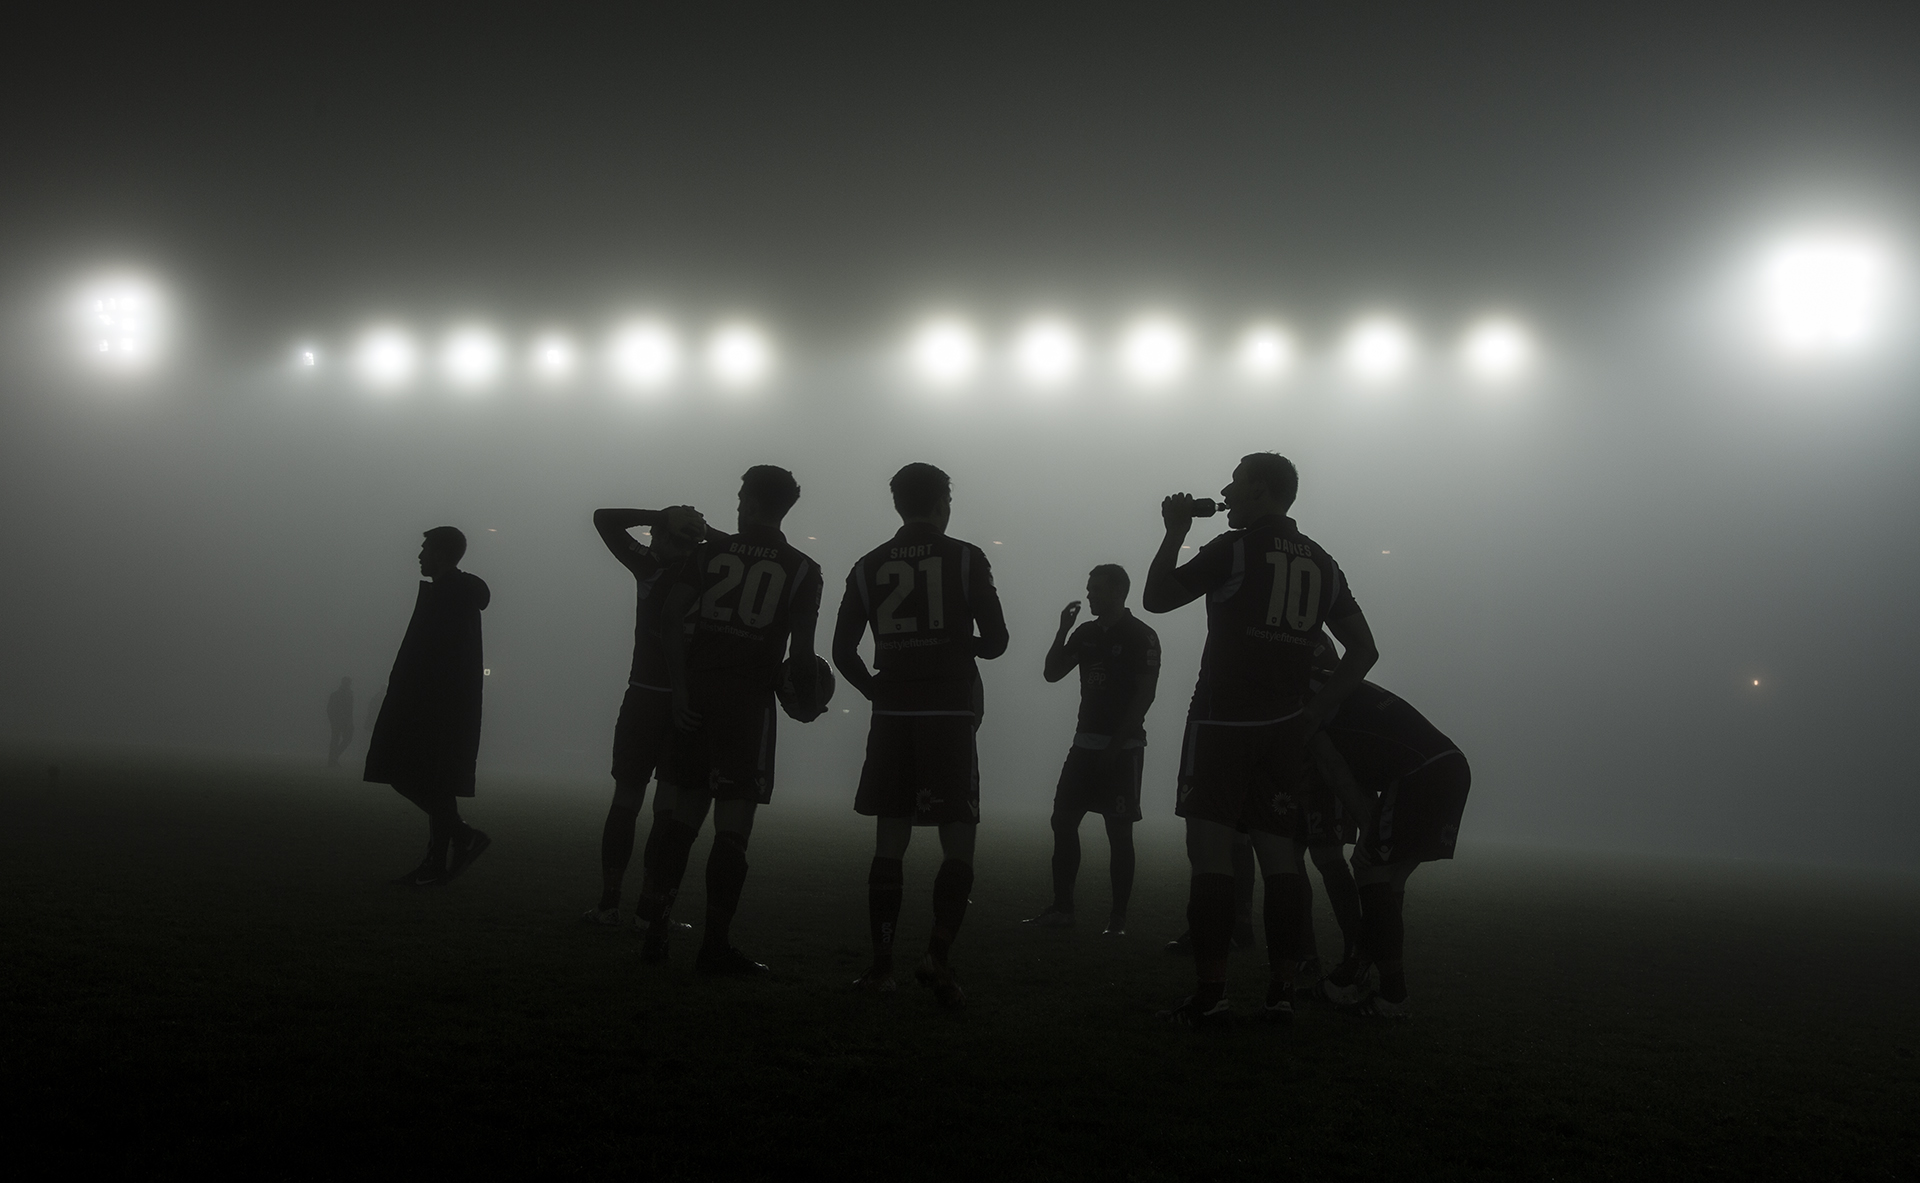 Nik's photo of The Nomads' players waiting on the referee's decision during the Nathaniel MG Cup game against TNS, which was eventually called off due to fog has been shortlisted.